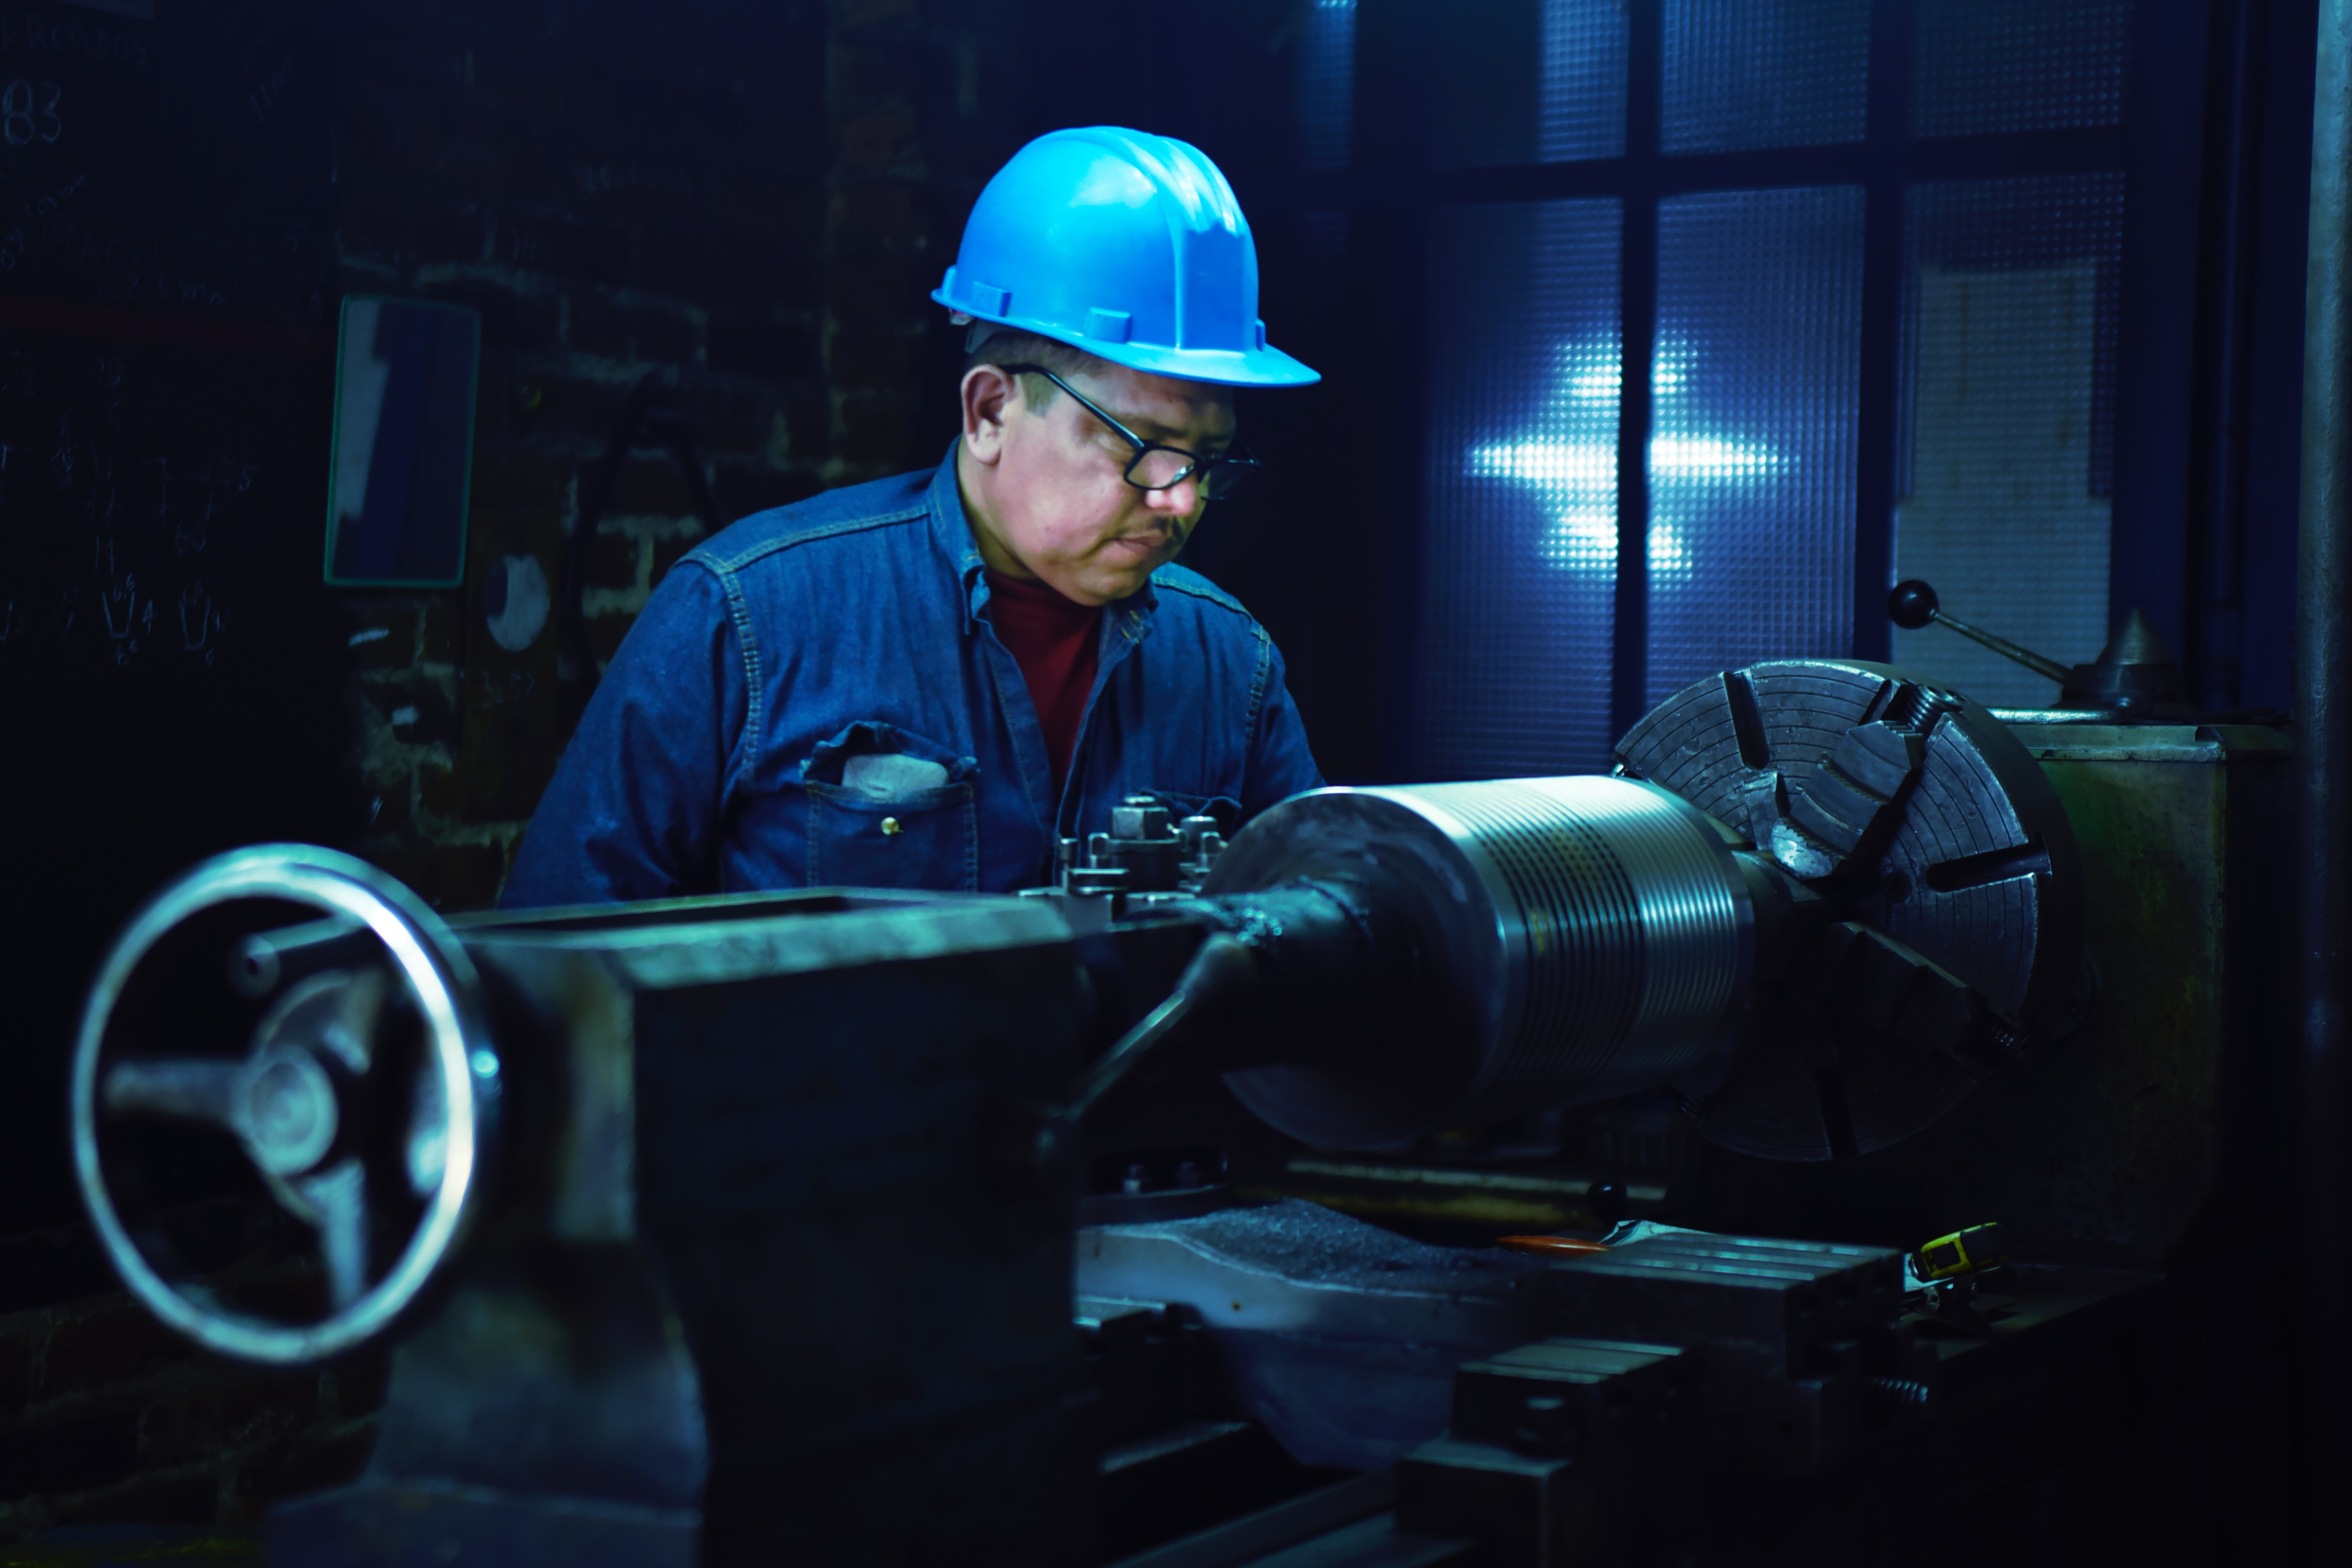 The key role of Texas in the manufacturing industry